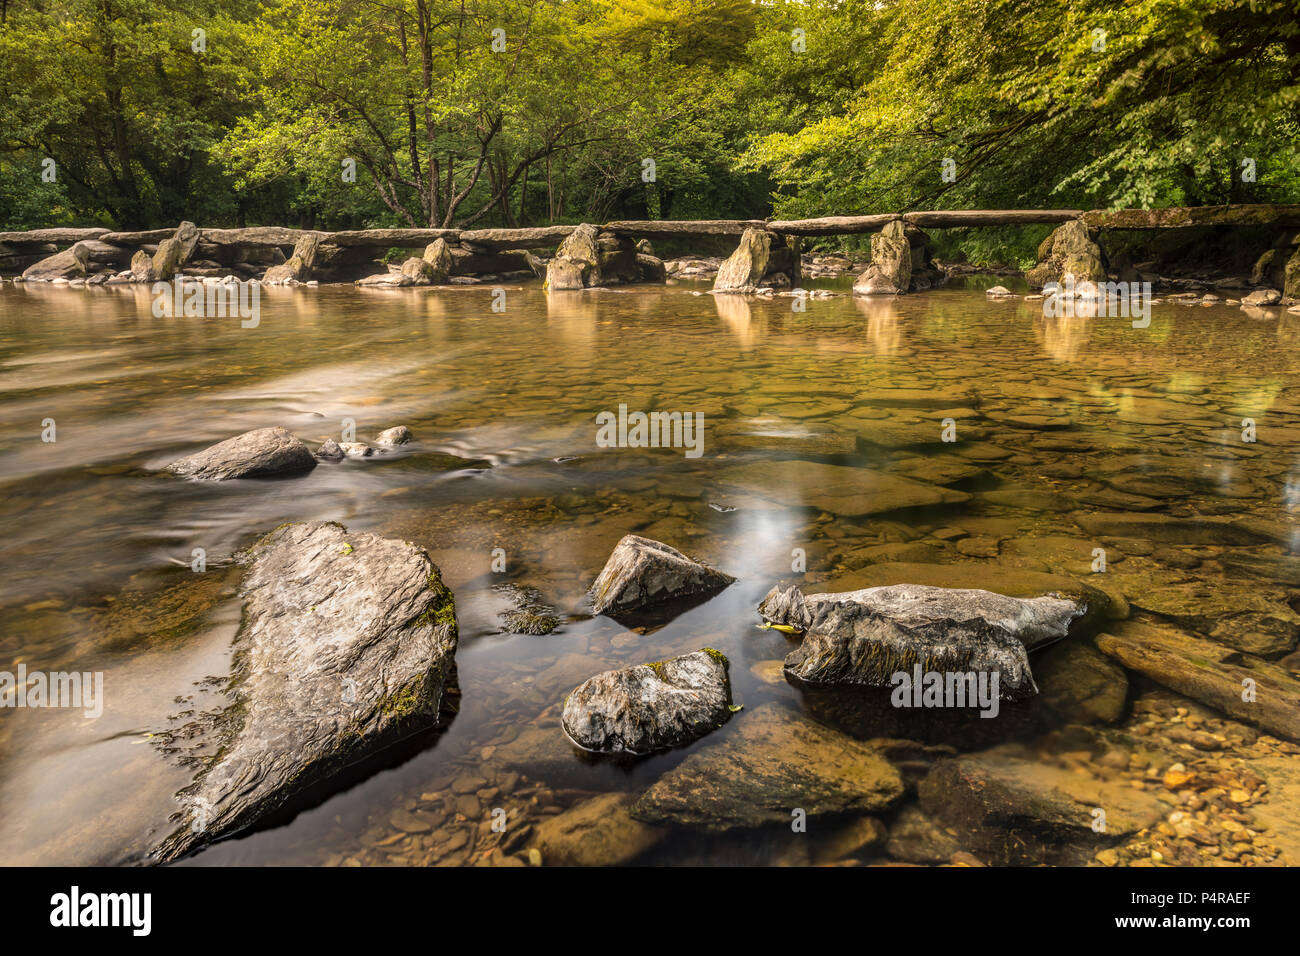 UK Weather -June 21st, the longest day, the wind strengthens at dawn clearing the cloud allowing the sun to light up the historic Tarr Steps on the Ri - Stock Image